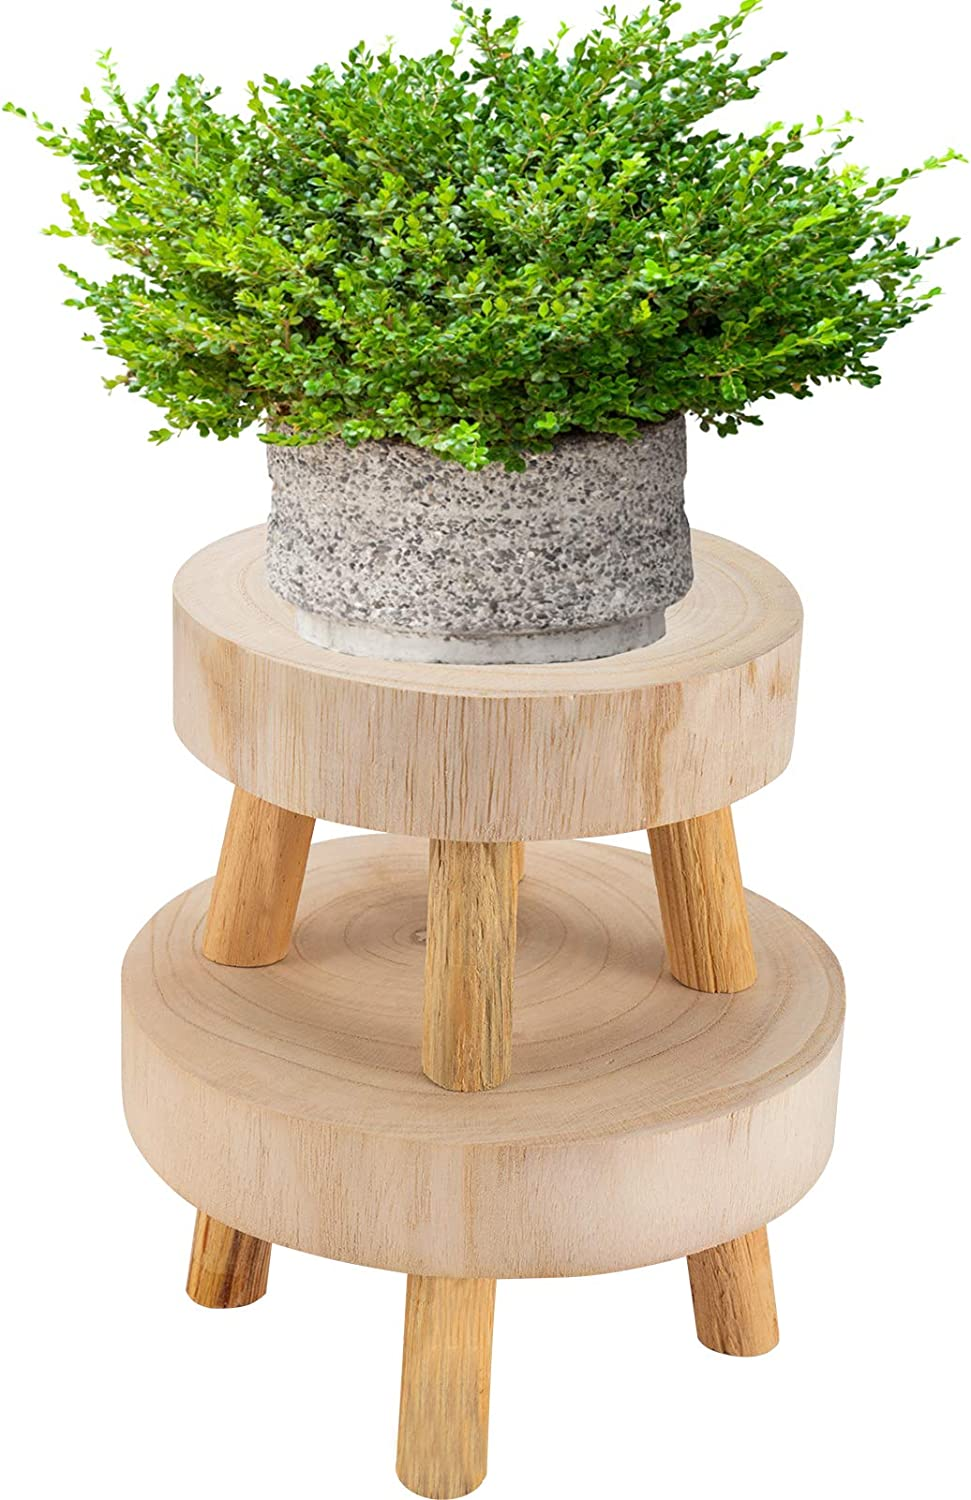 Pack of 2 Mini Wooden Stool Display Stand- Round Decorative Flower Shelf Bonsai Rack Garden Plant Pot Riser Holder Modern Plant Stand with Wood Grain for Indoor Outdoor Home Patio Decoration (S, M)